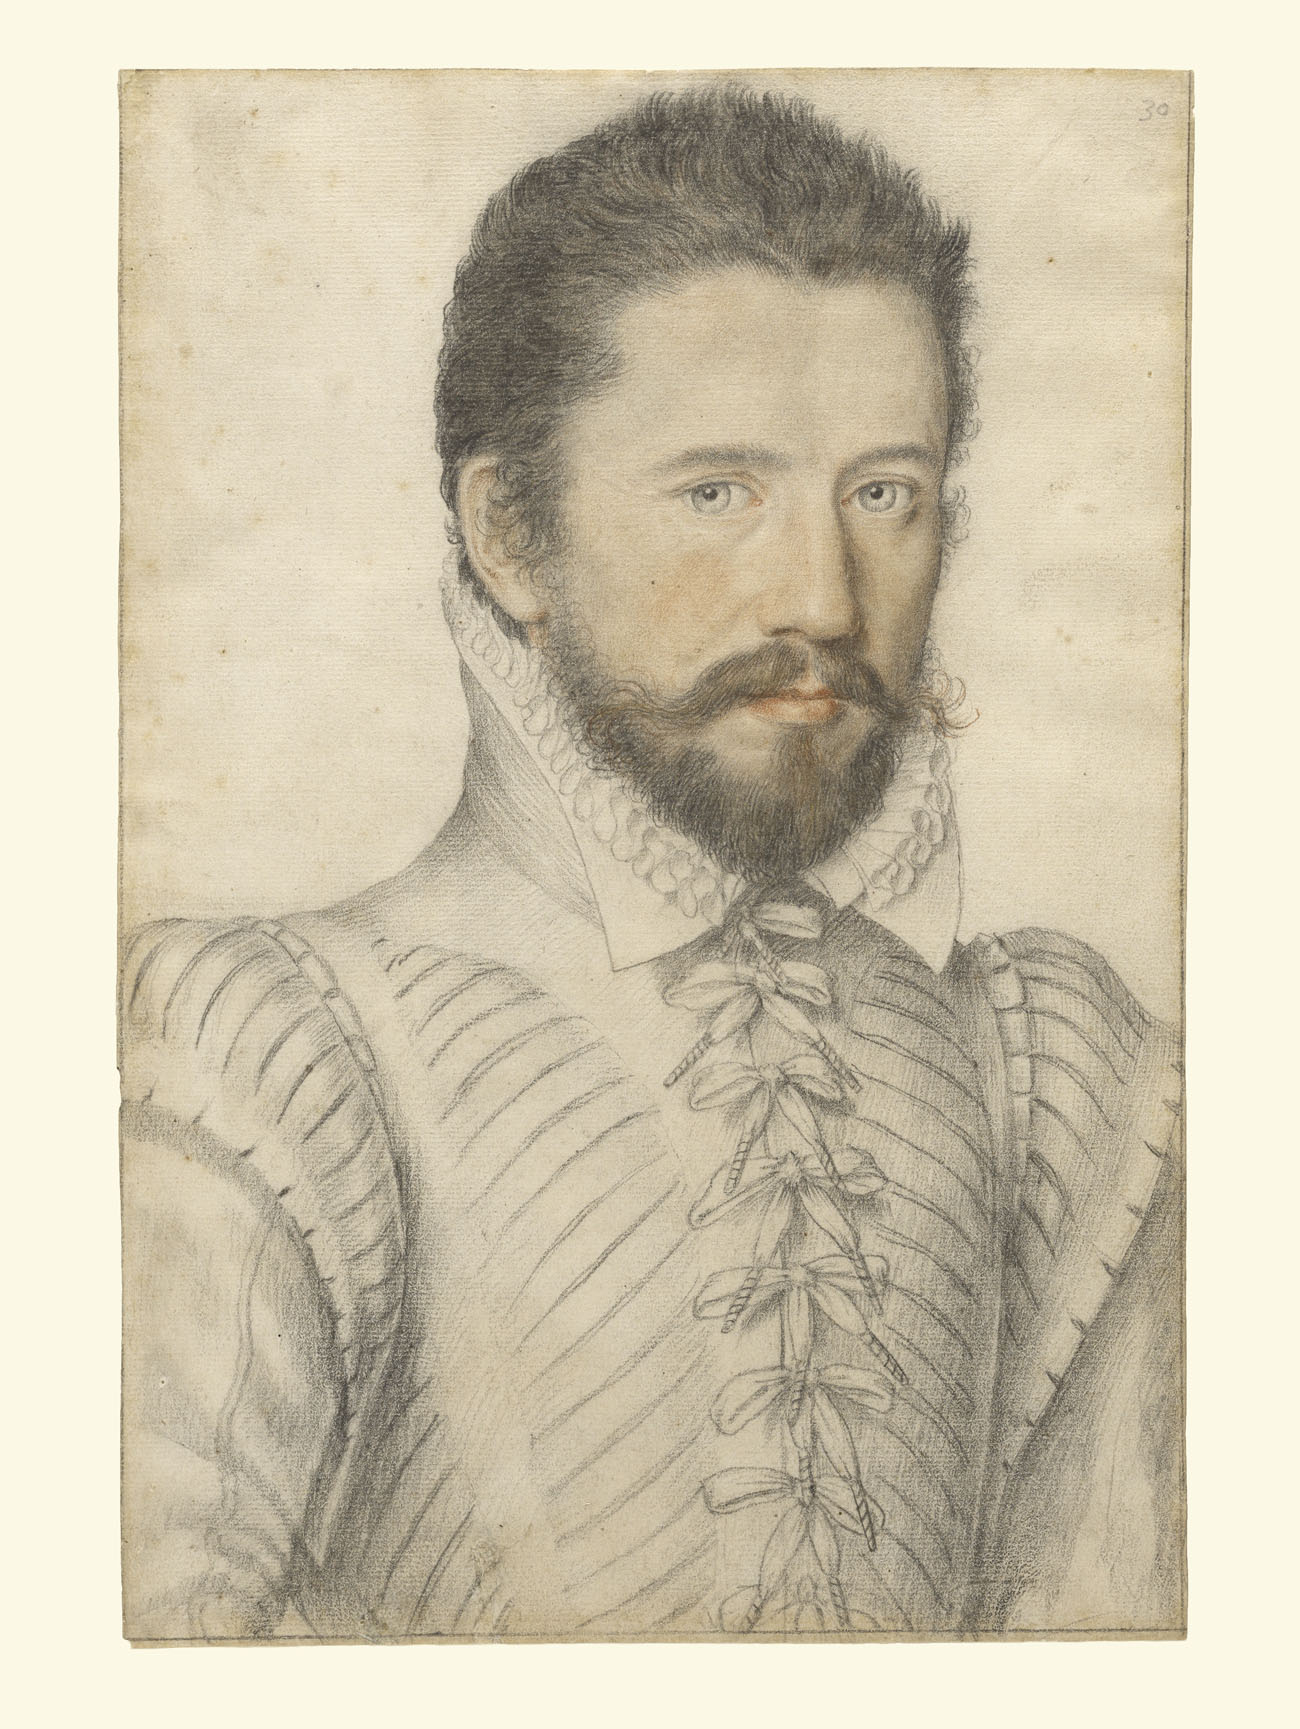 Portrait of a Bearded Man / L'Anonyme Lécurieux